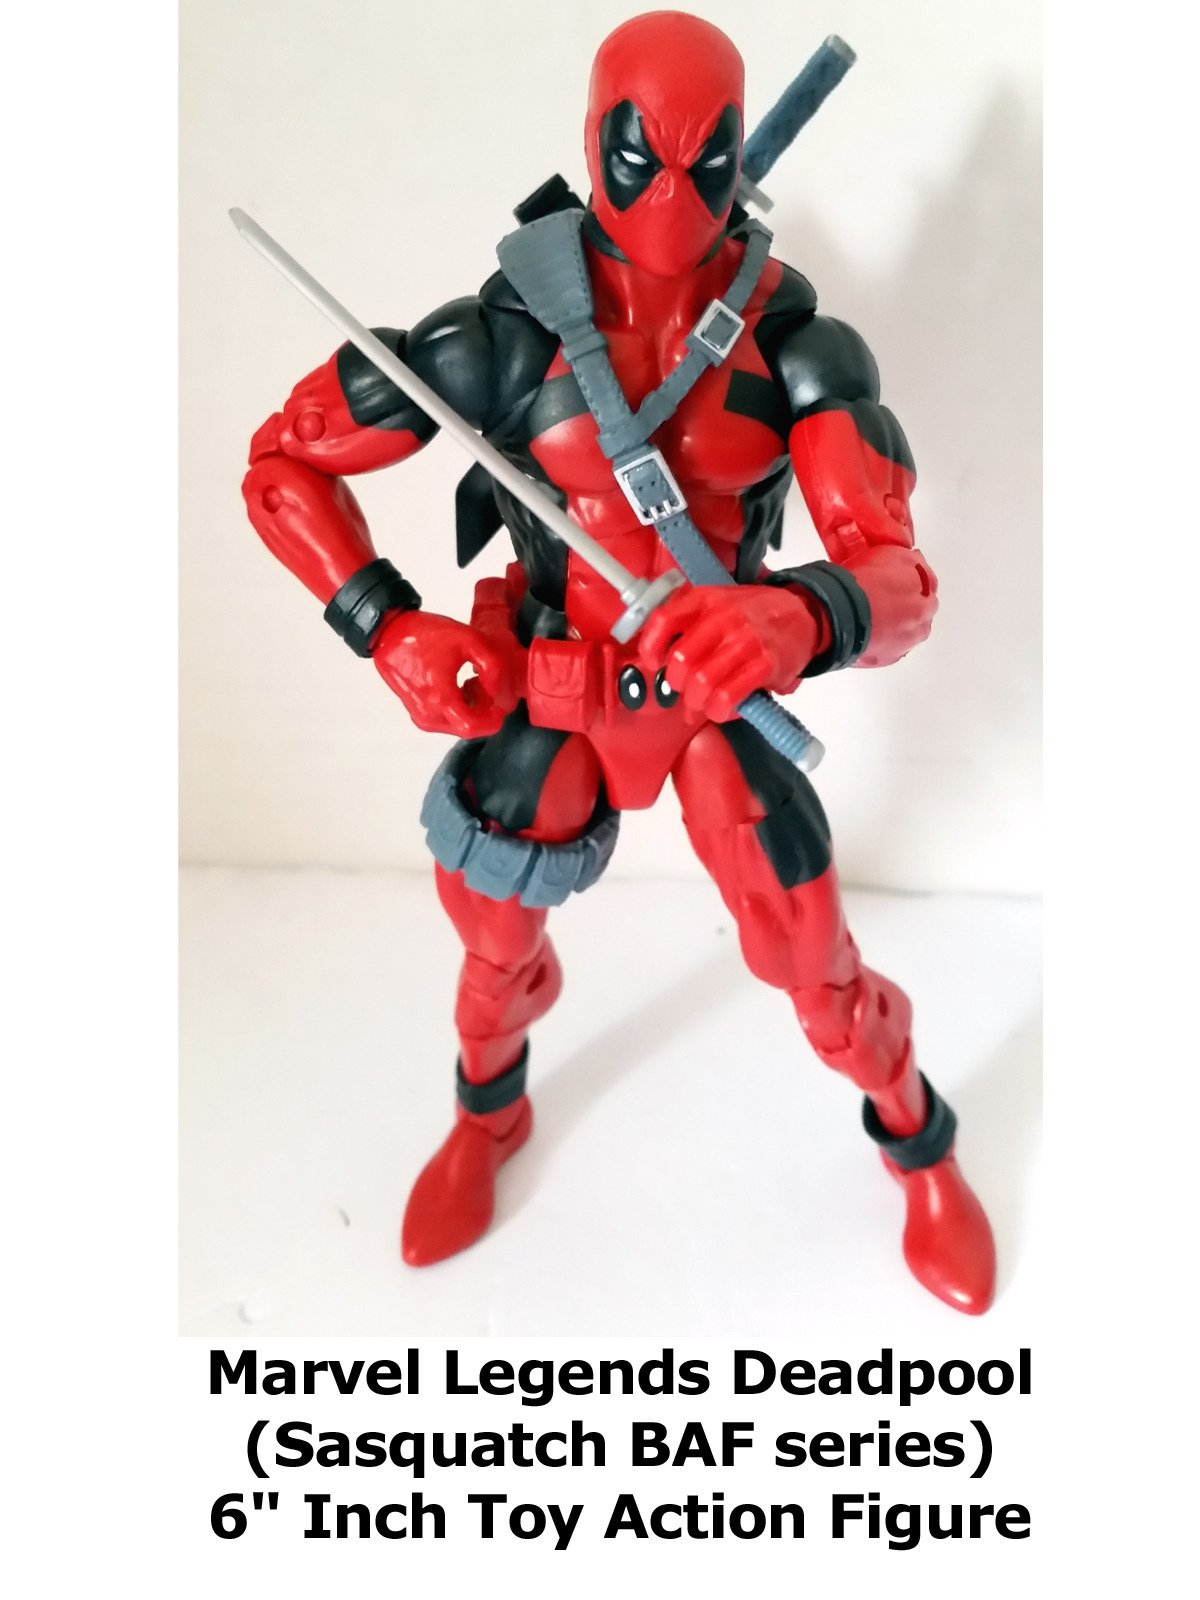 "Review: Marvel Legends Deadpool (Sasquatch BAF series) 6"" Inch Toy Action Figure on Amazon Prime Video UK"